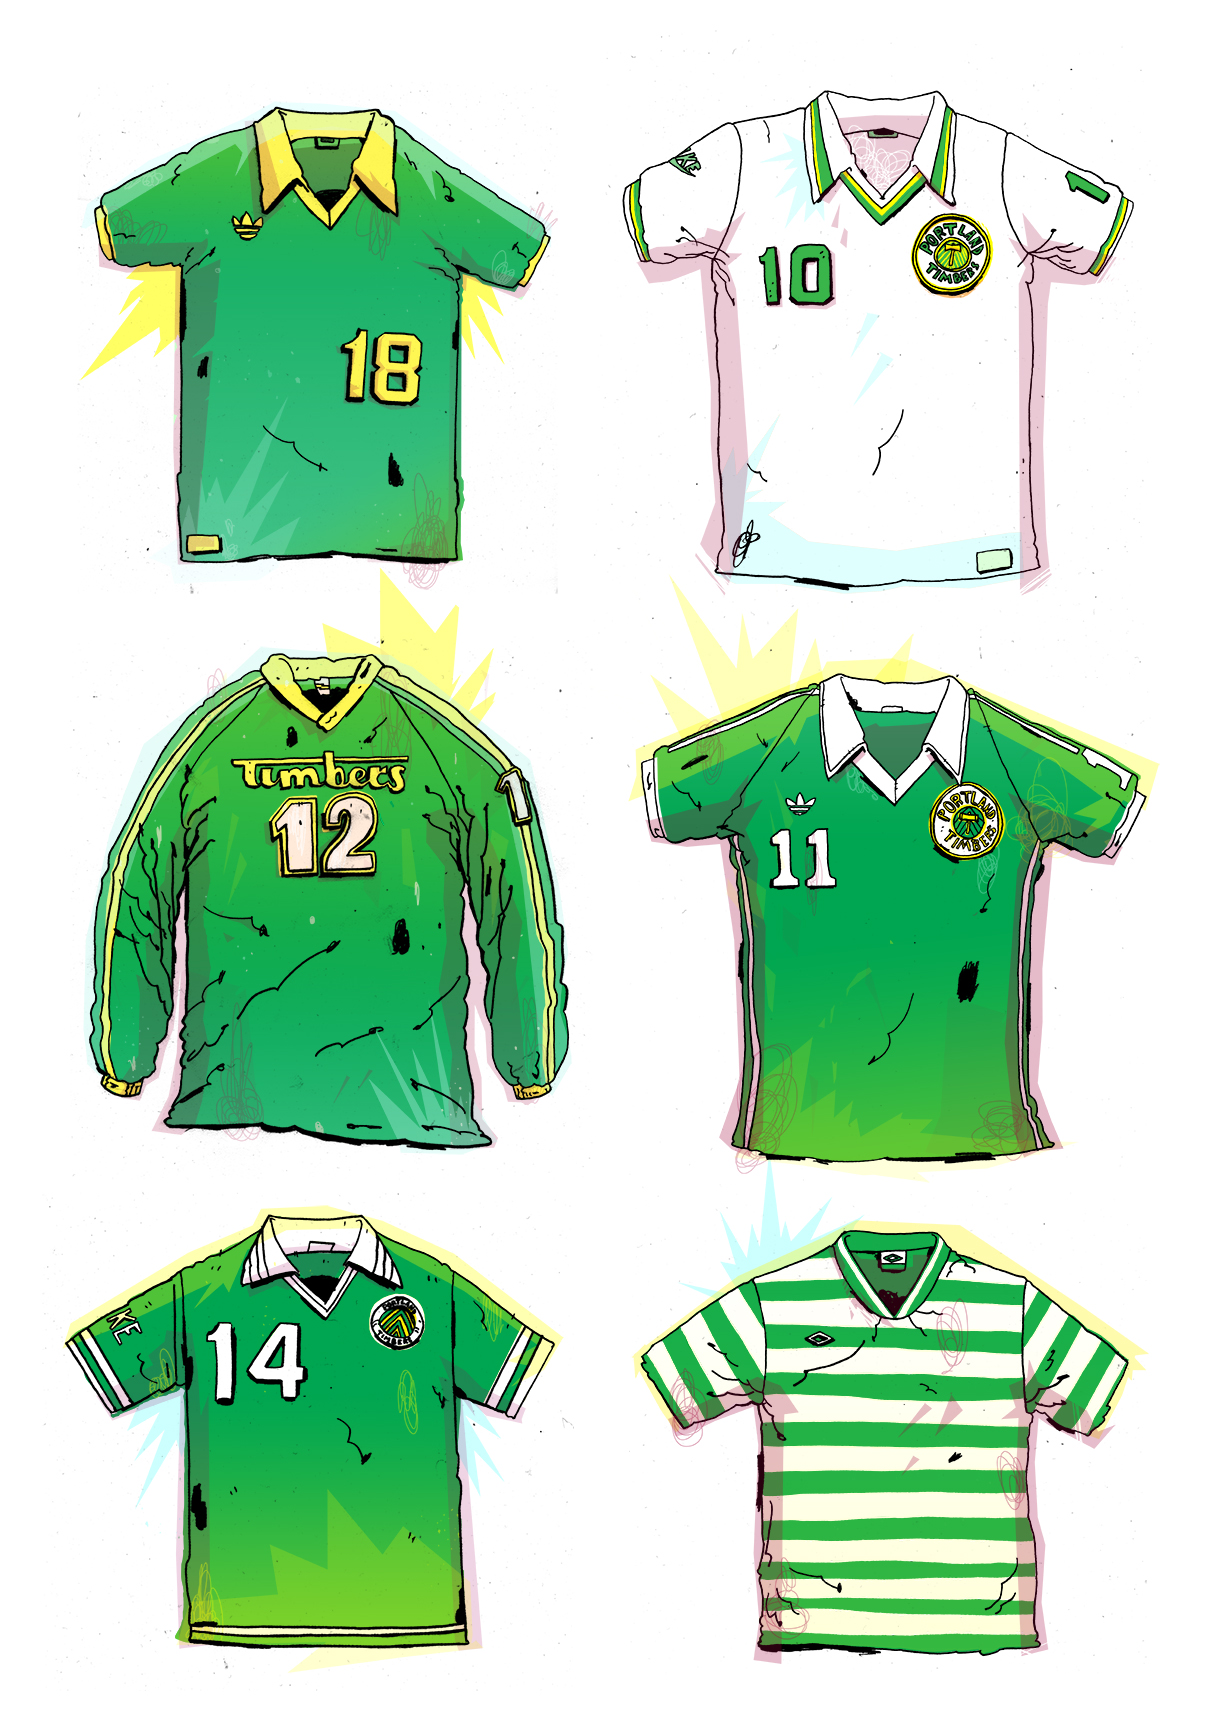 Timbers' Kits from Back in the day.